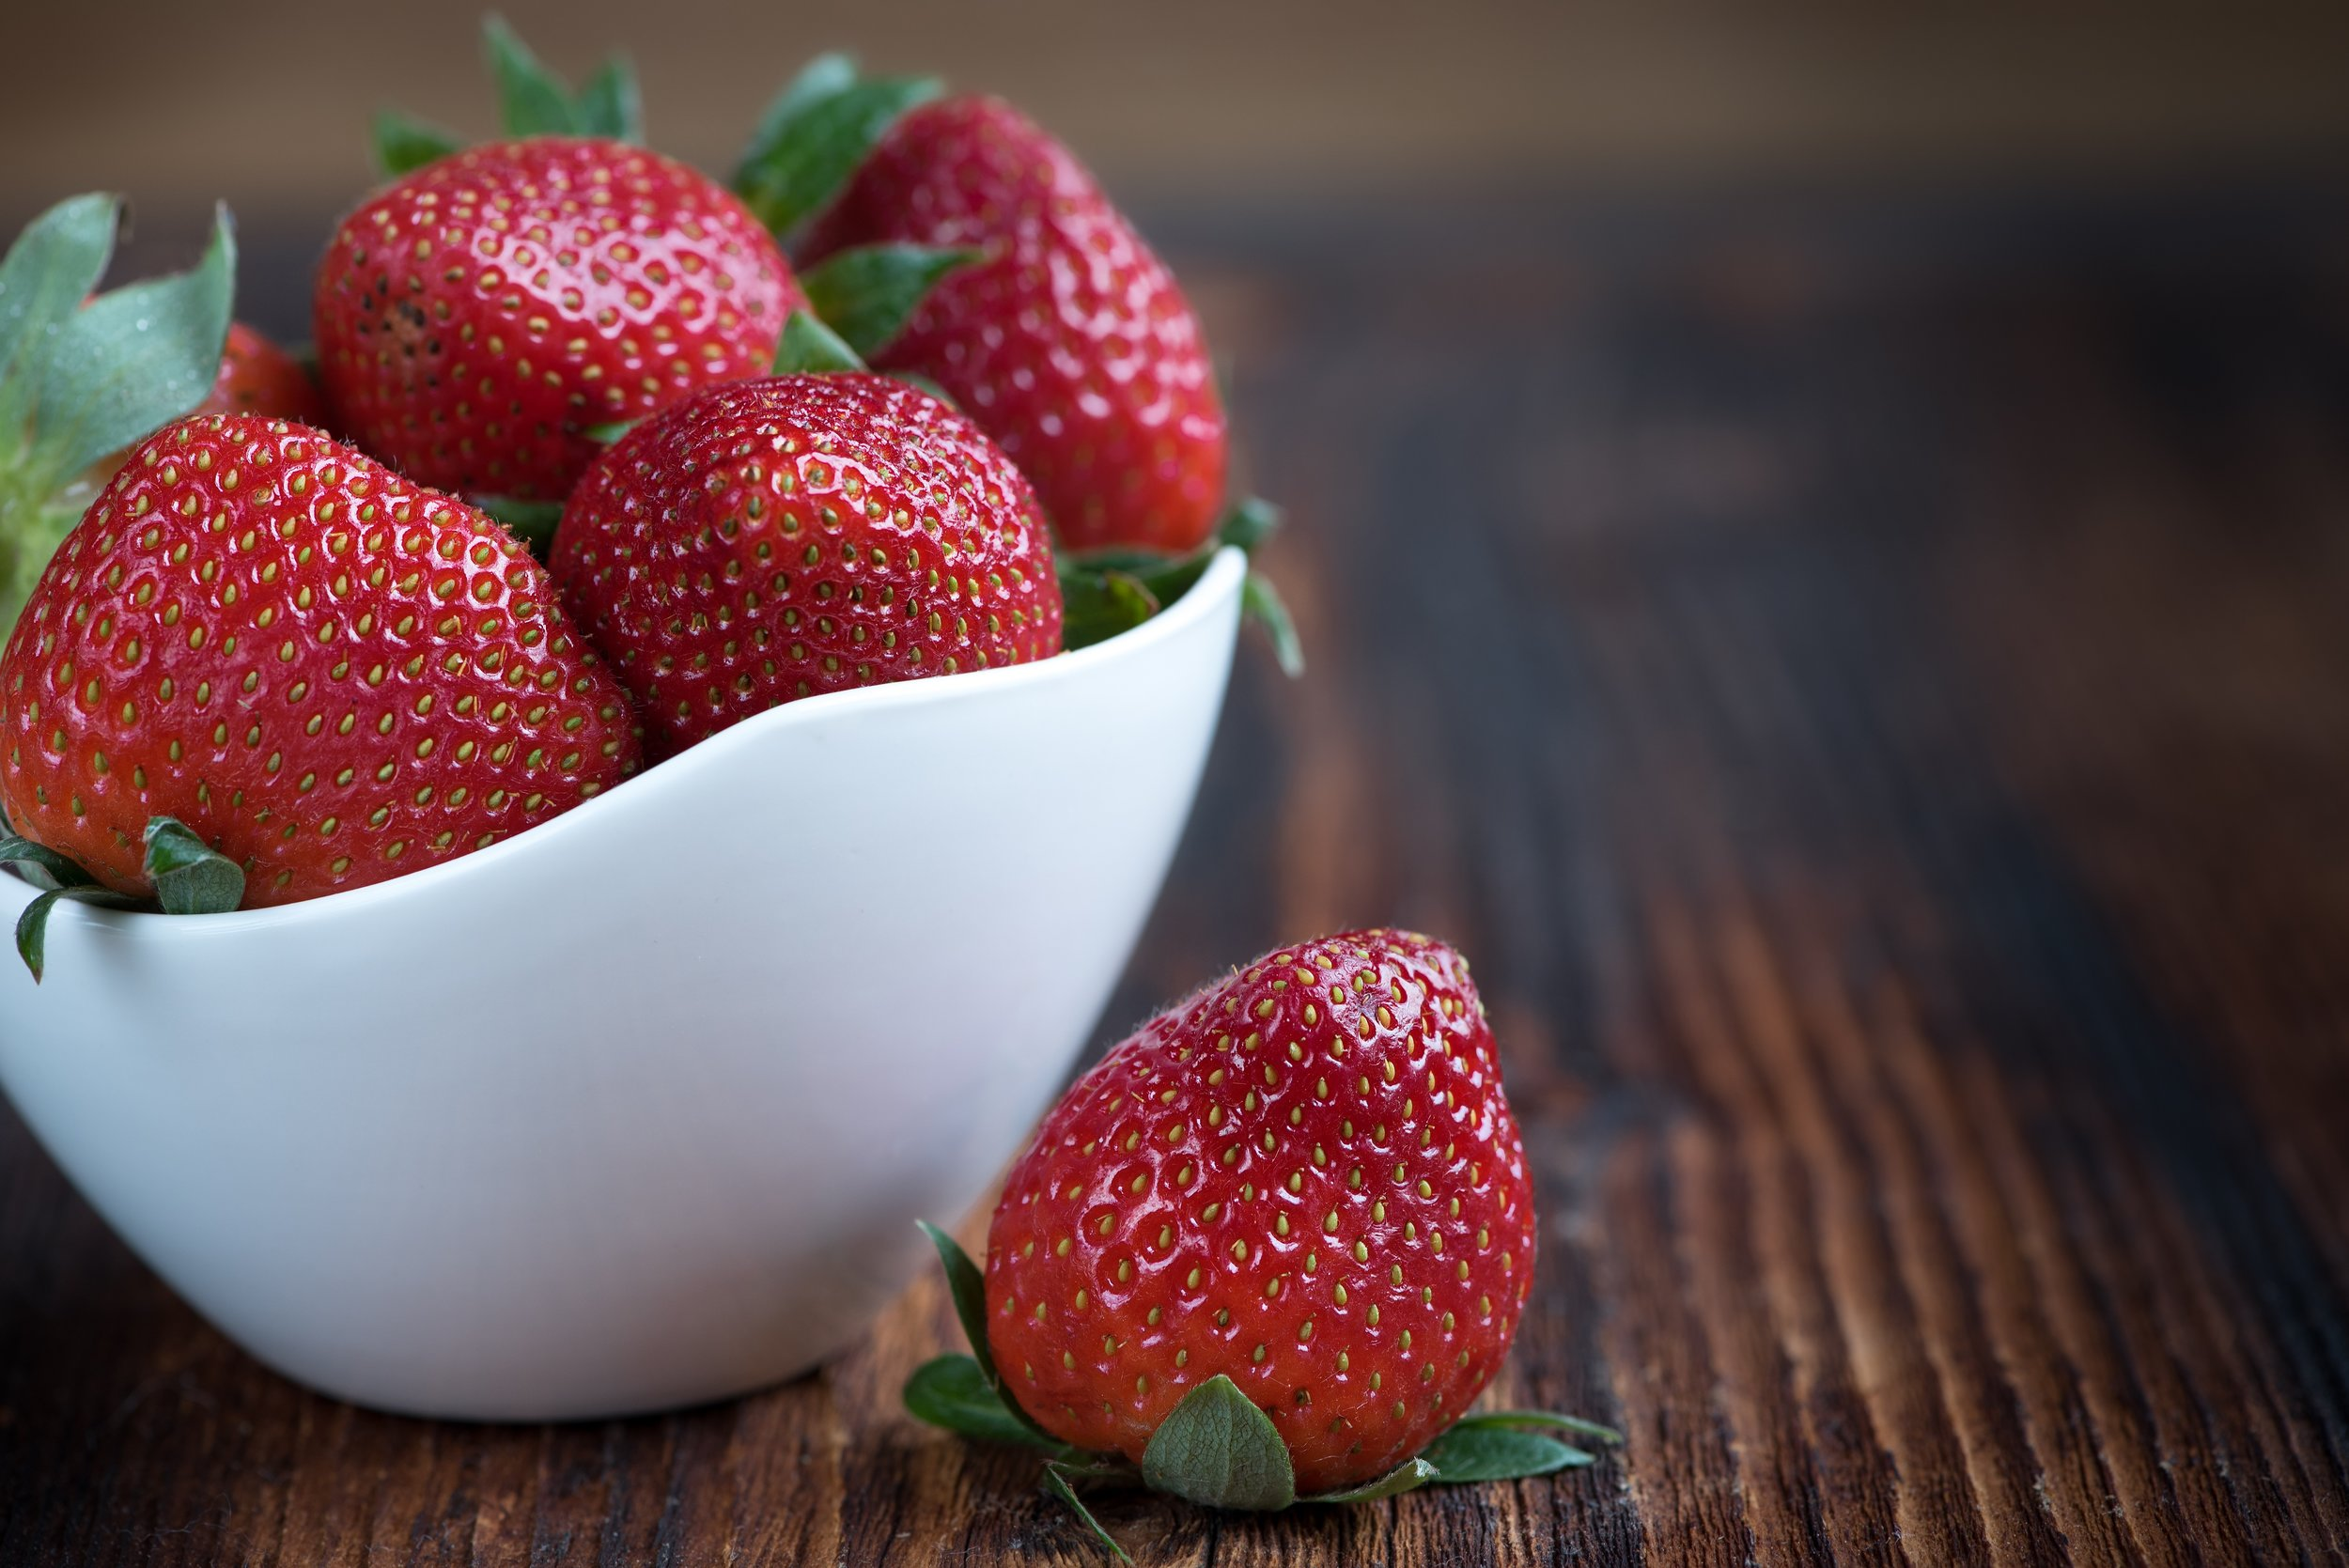 strawberries-frisch-ripe-sweet-89778.jpg